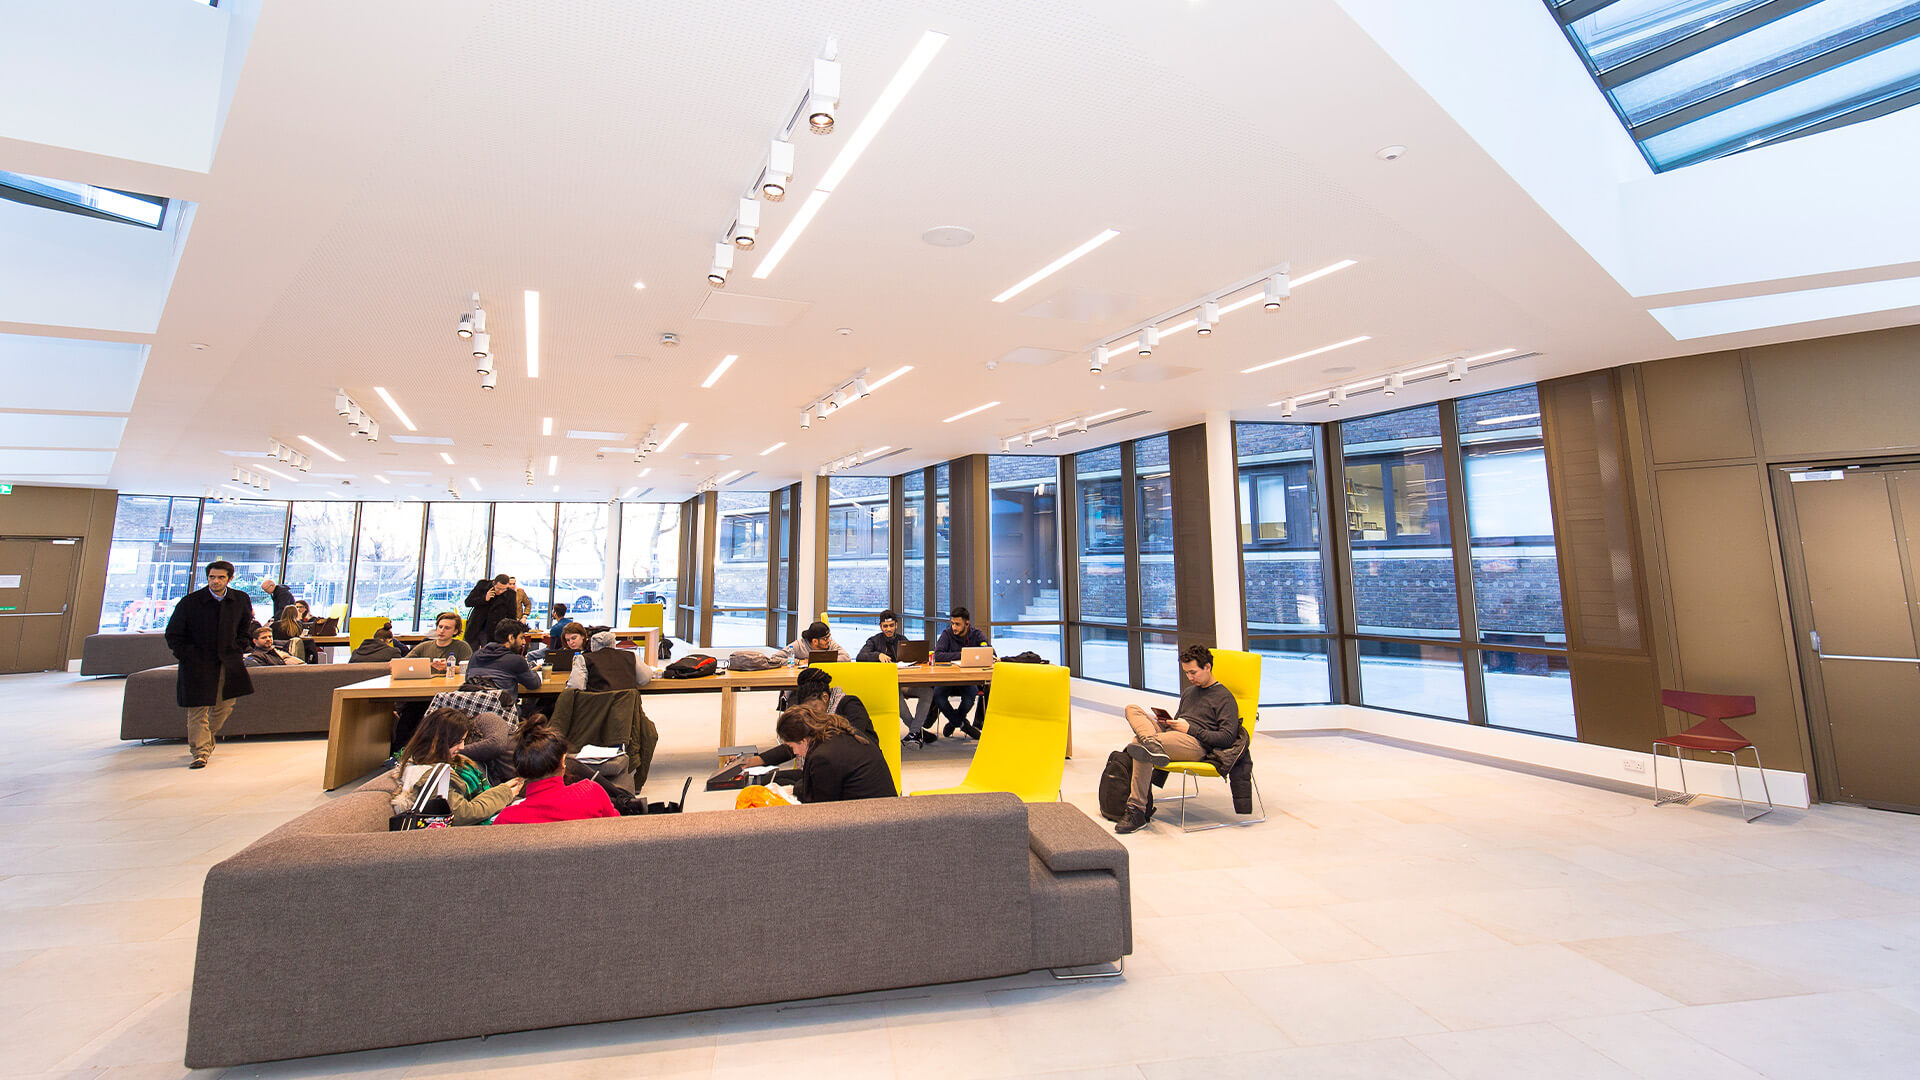 Students relaxing and studying on campus at City, University of London